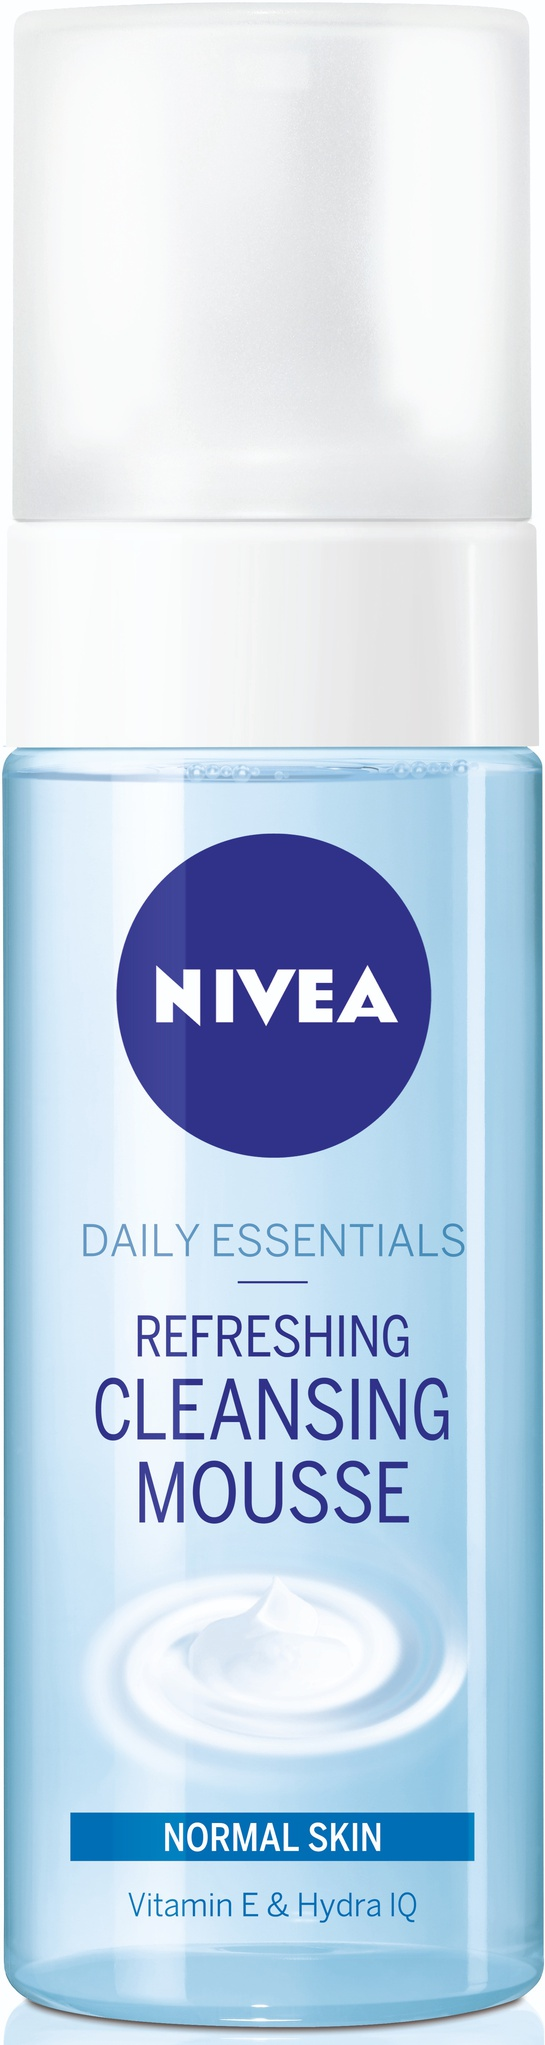 Nivea Daily Essentials Refreshing Mousse